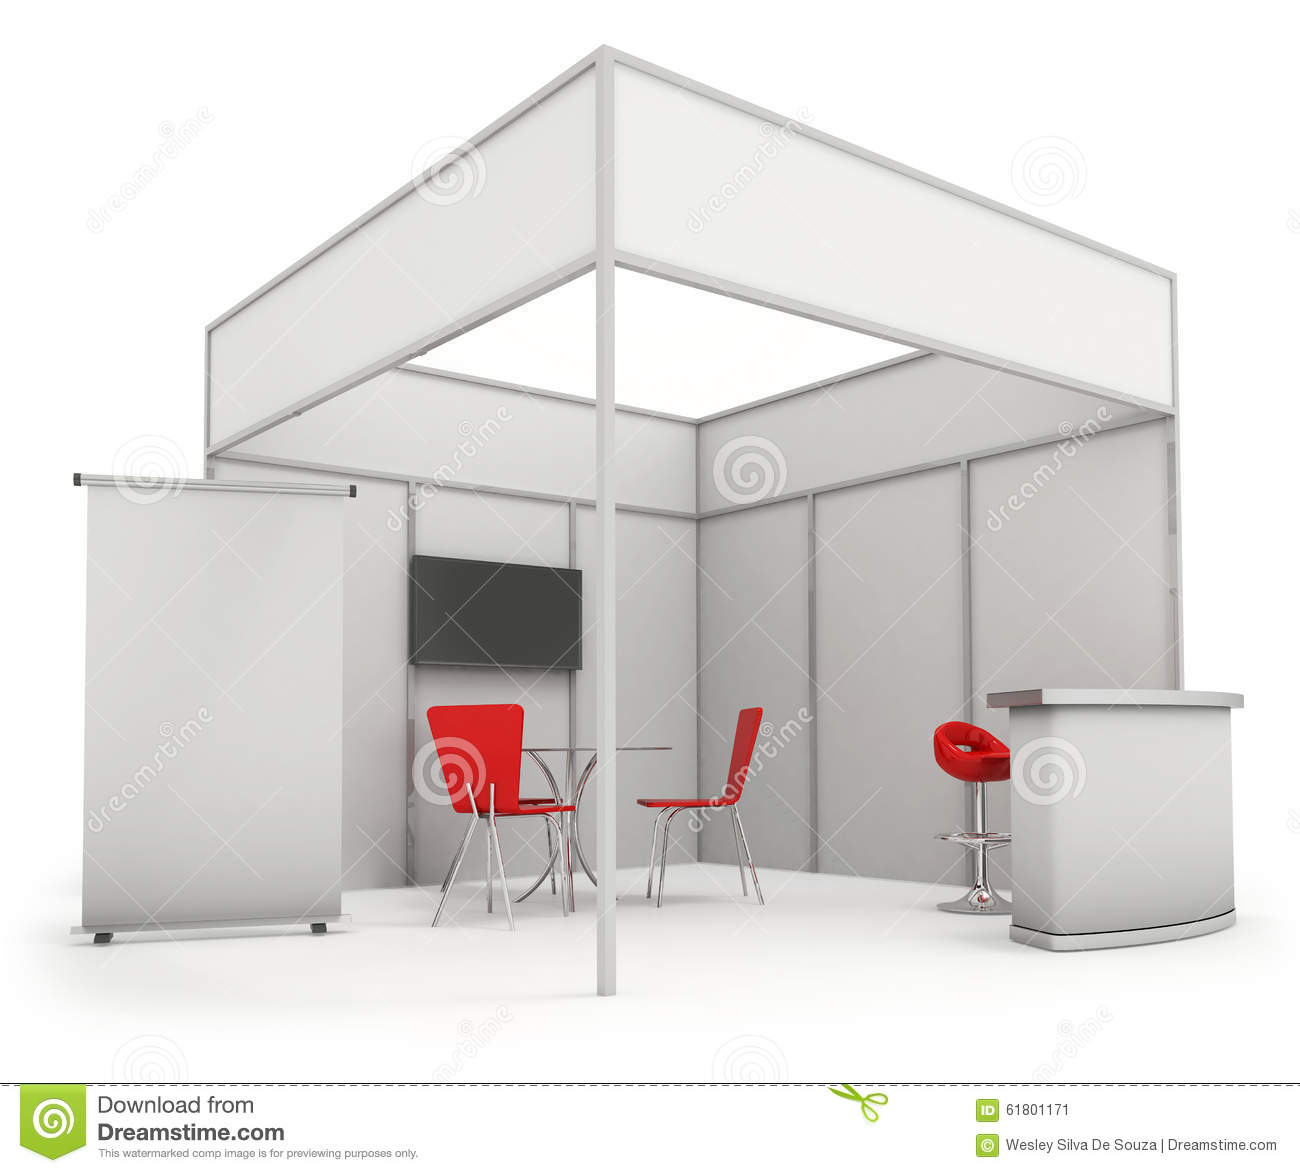 Exhibition Booth Vector Free Download : Trade exhibition stand and blank roll banner d render